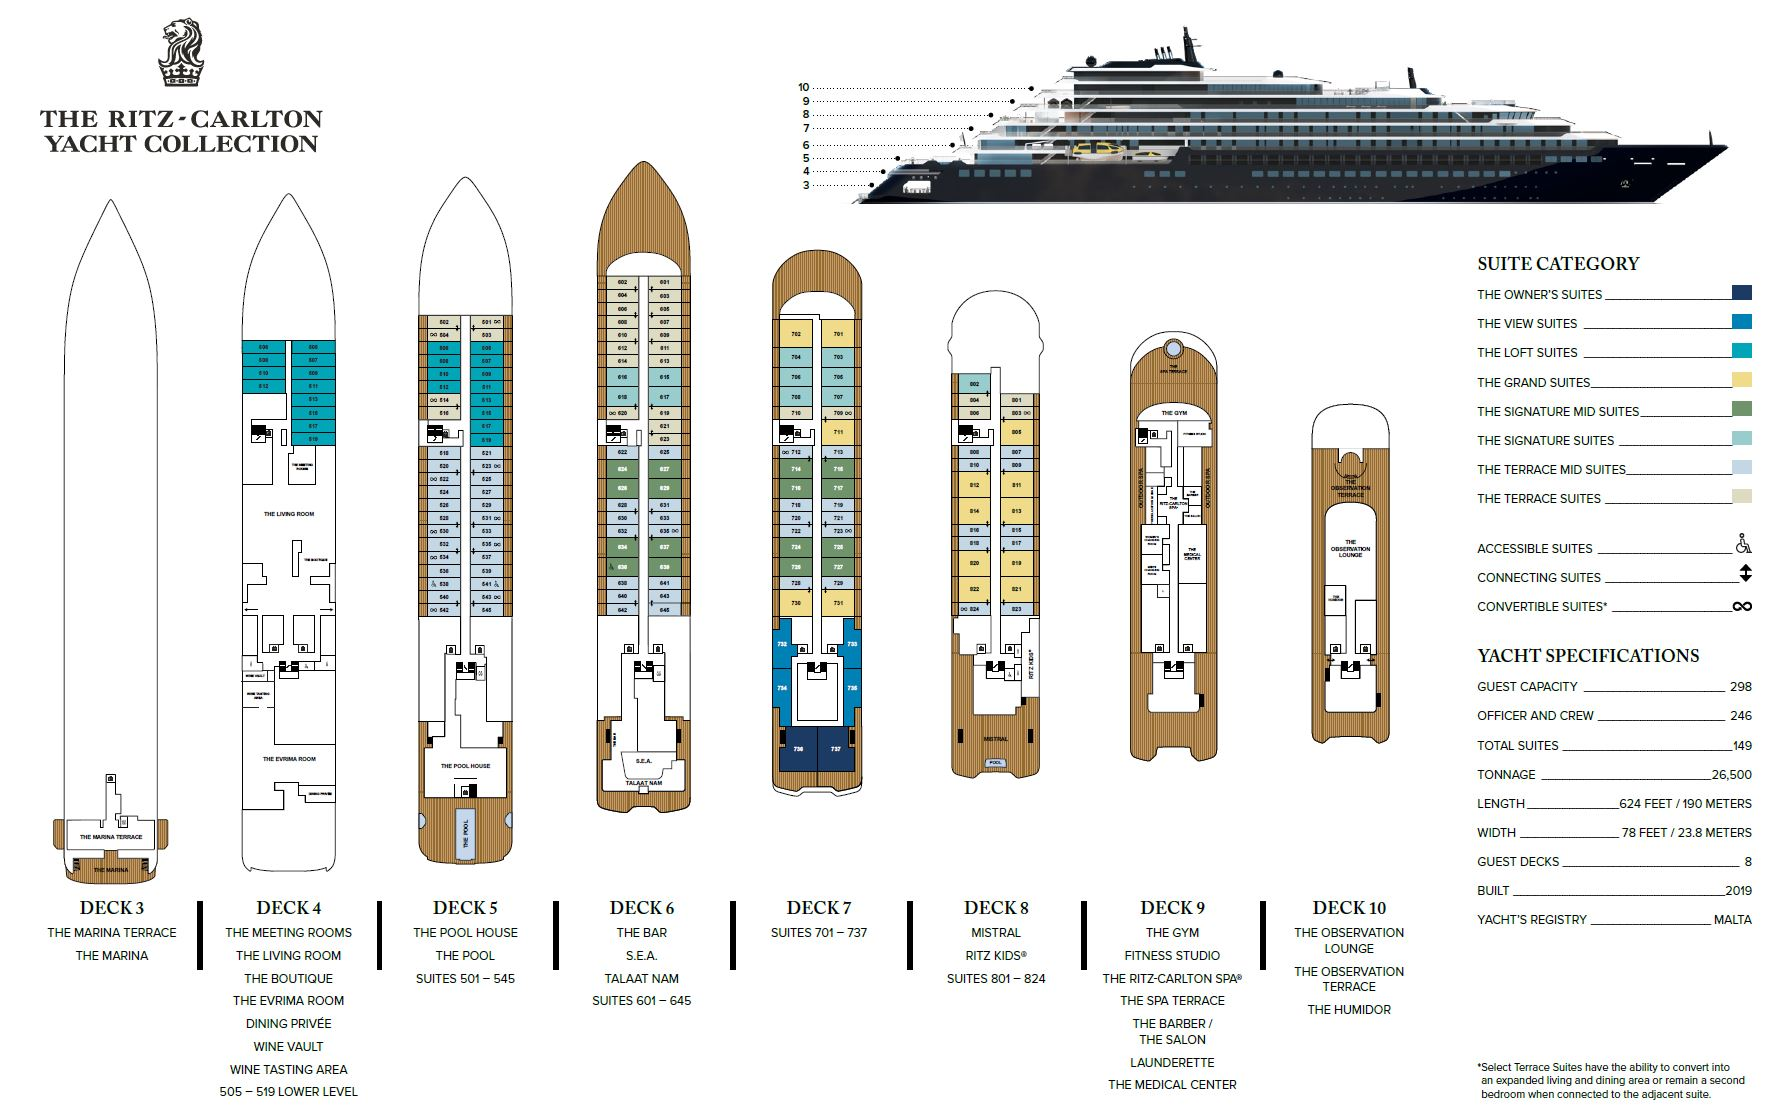 Downoad the The Ritz-Carlton Yacht Collection Deckplans